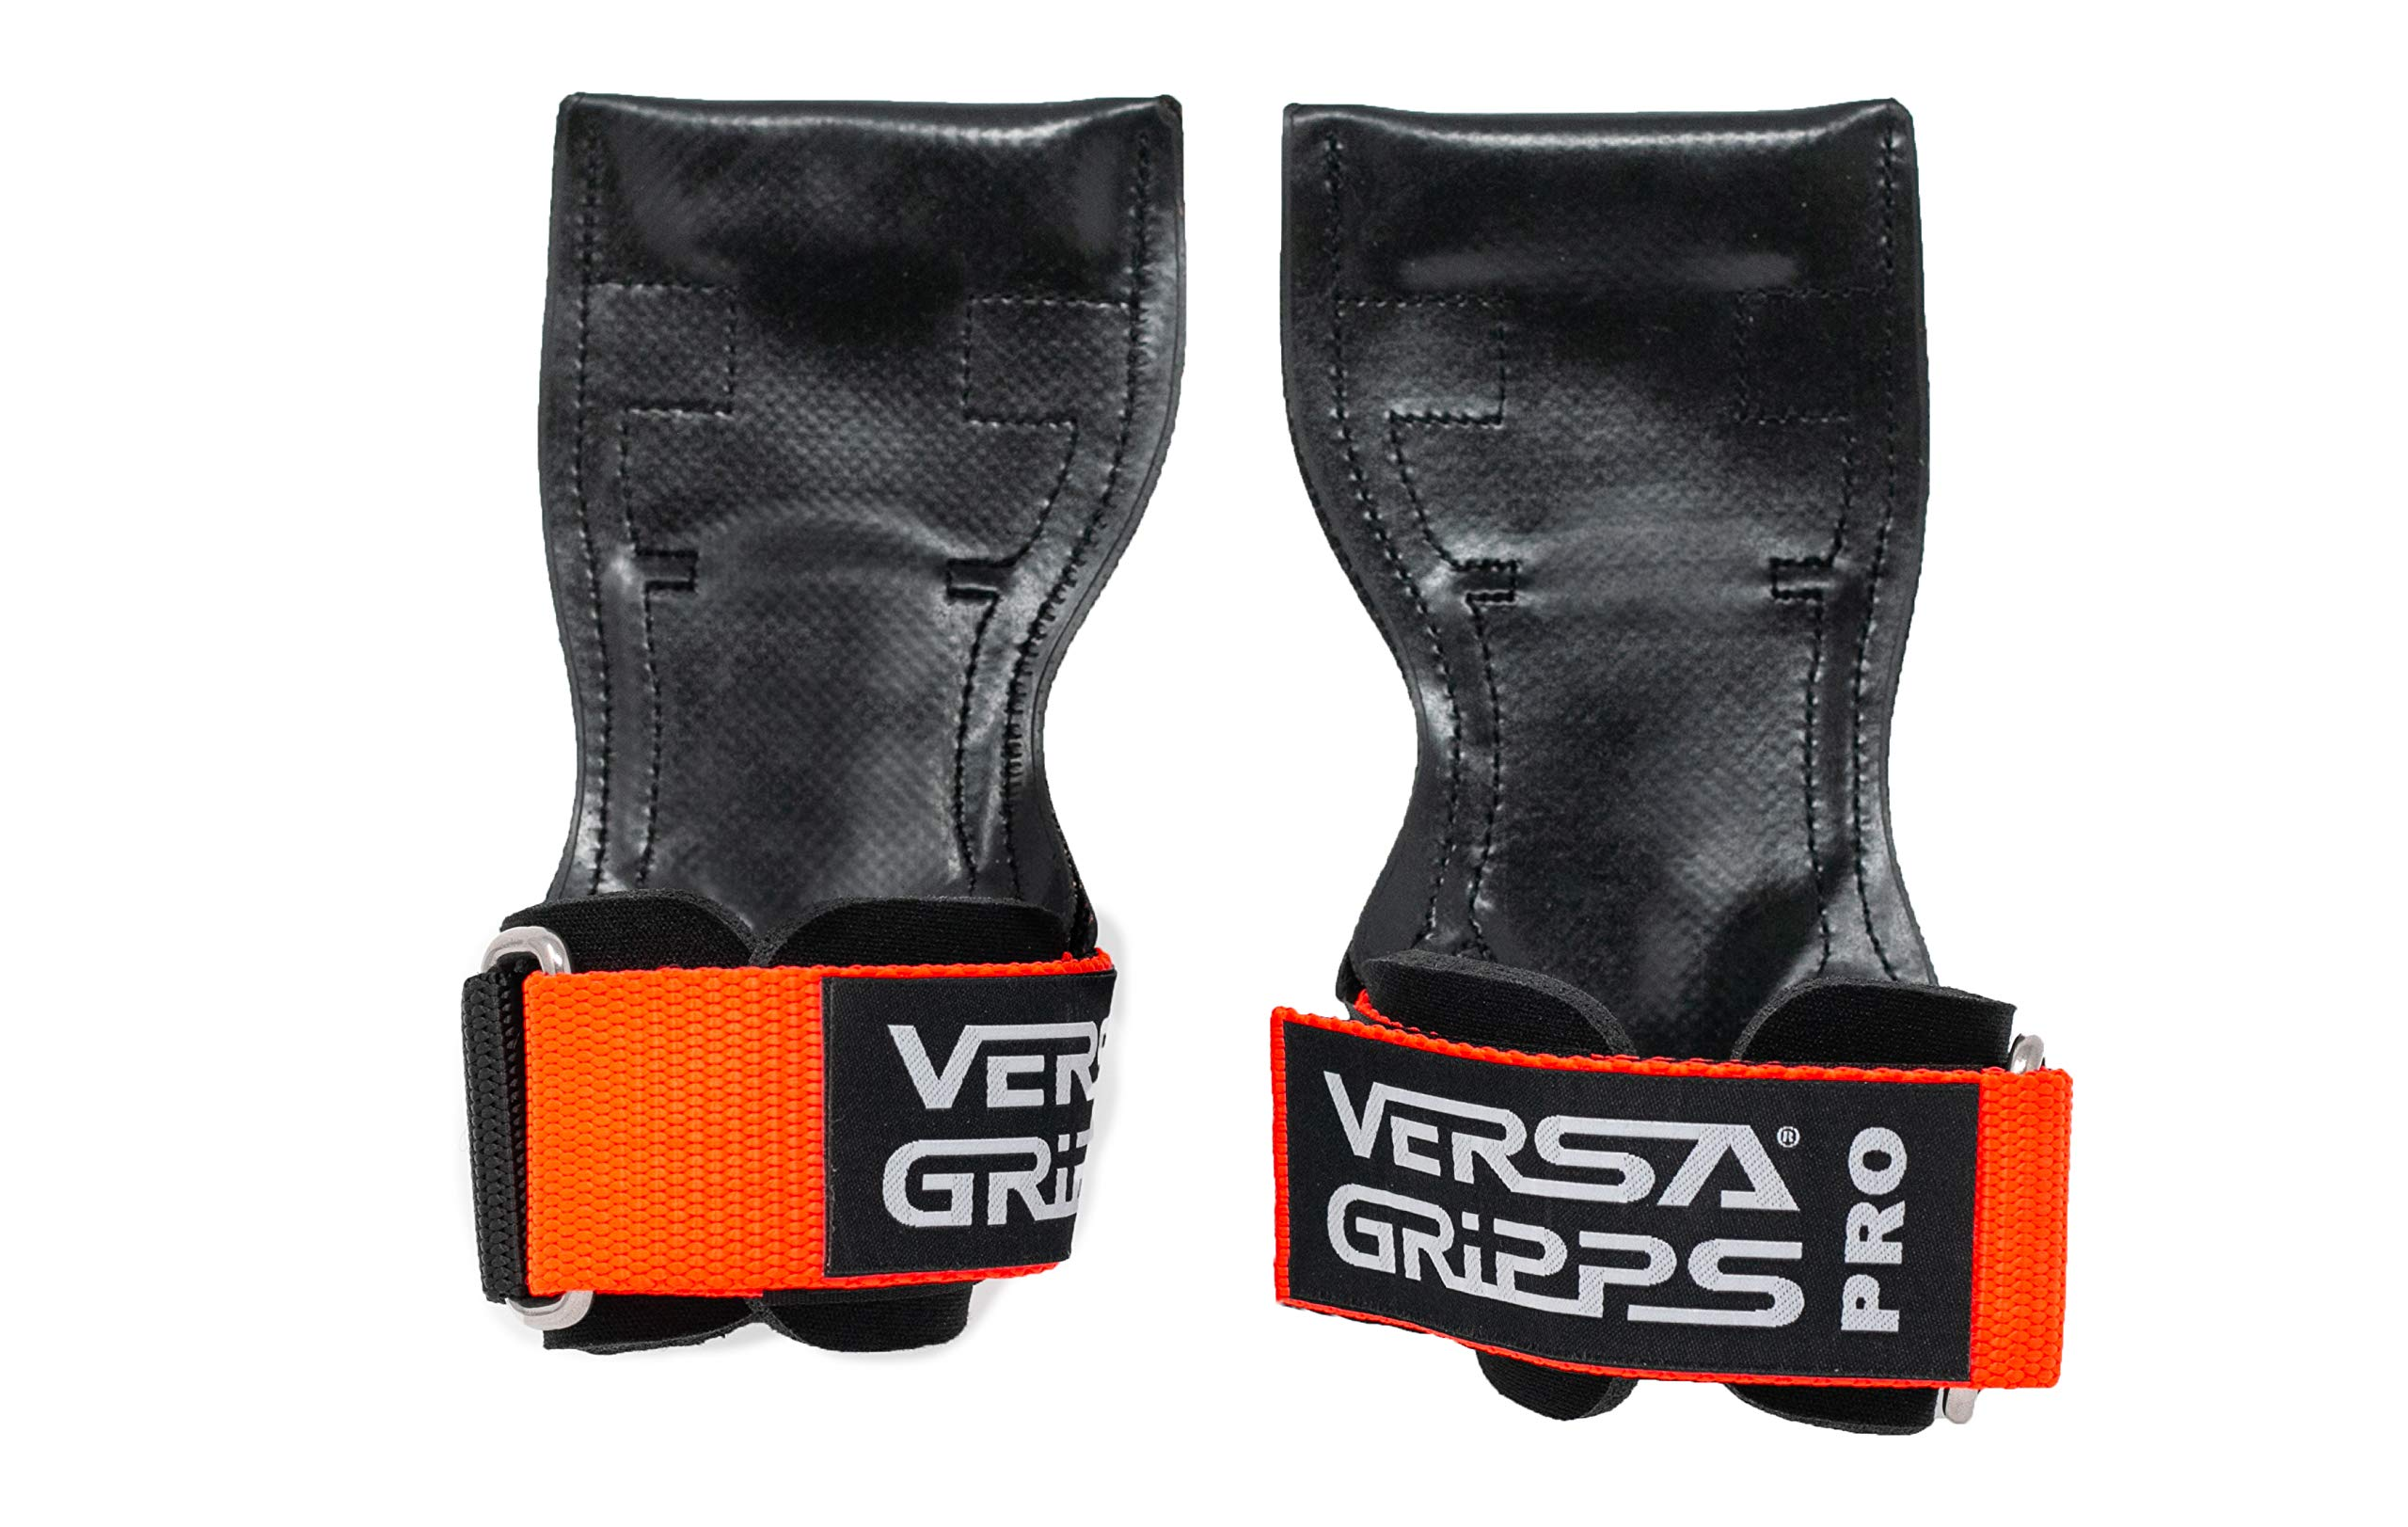 Versa Gripps PRO Authentic. The Best Training Accessory in The World. Made in The USA